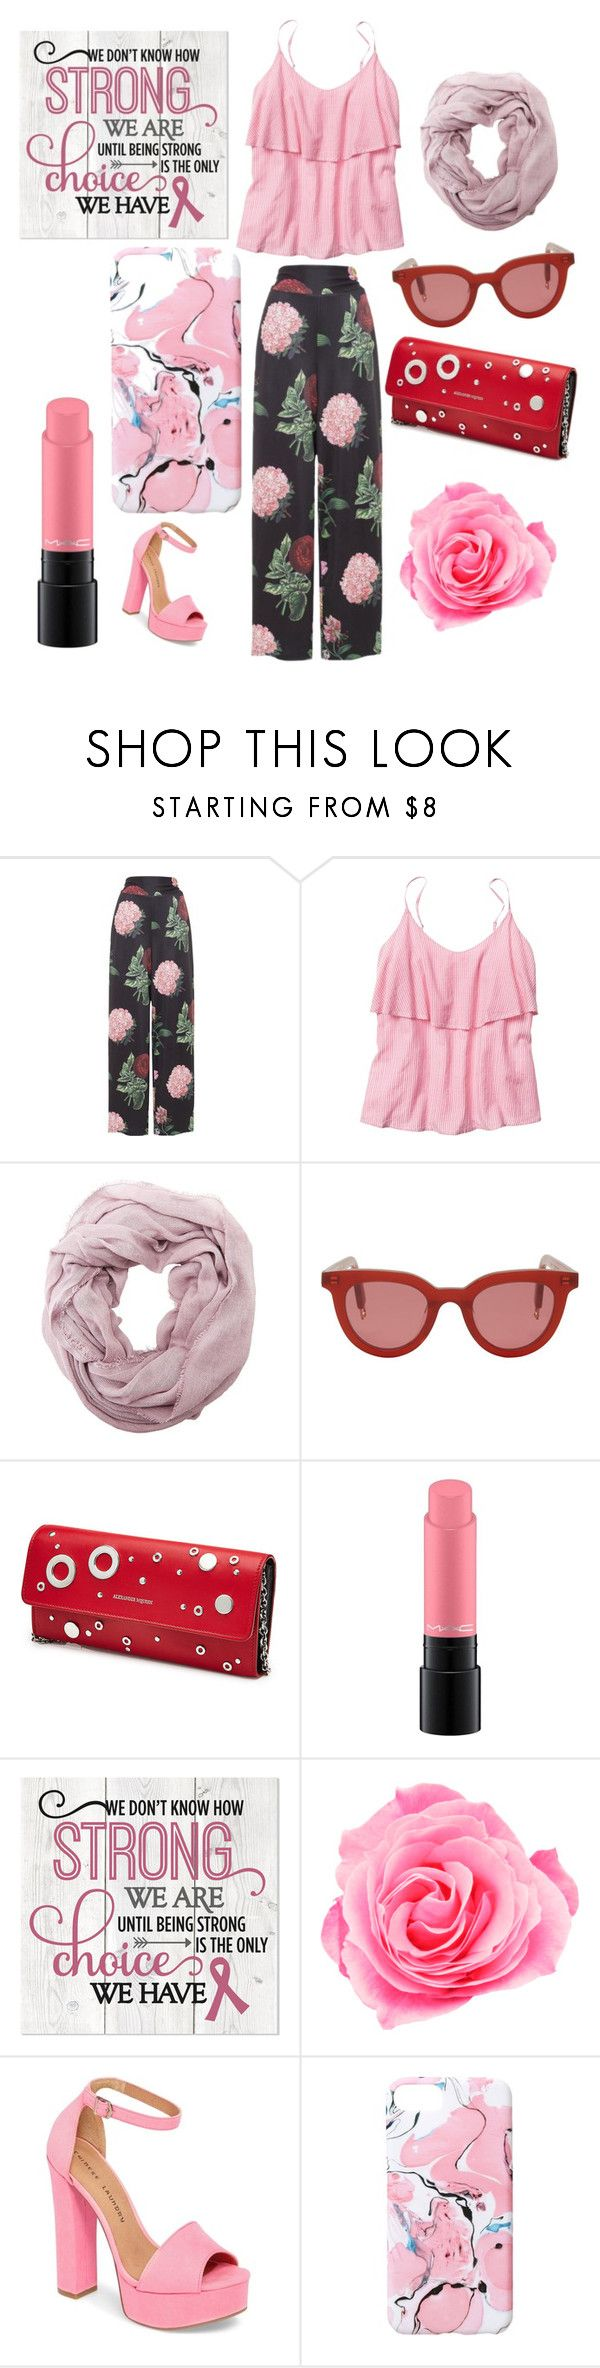 """simple pink"" by elpstlye ❤ liked on Polyvore featuring Voodoo Vixen, Gap, Charlotte Russe, Gentle Monster, Alexander McQueen, MAC Cosmetics, Chinese Laundry and Ankit"